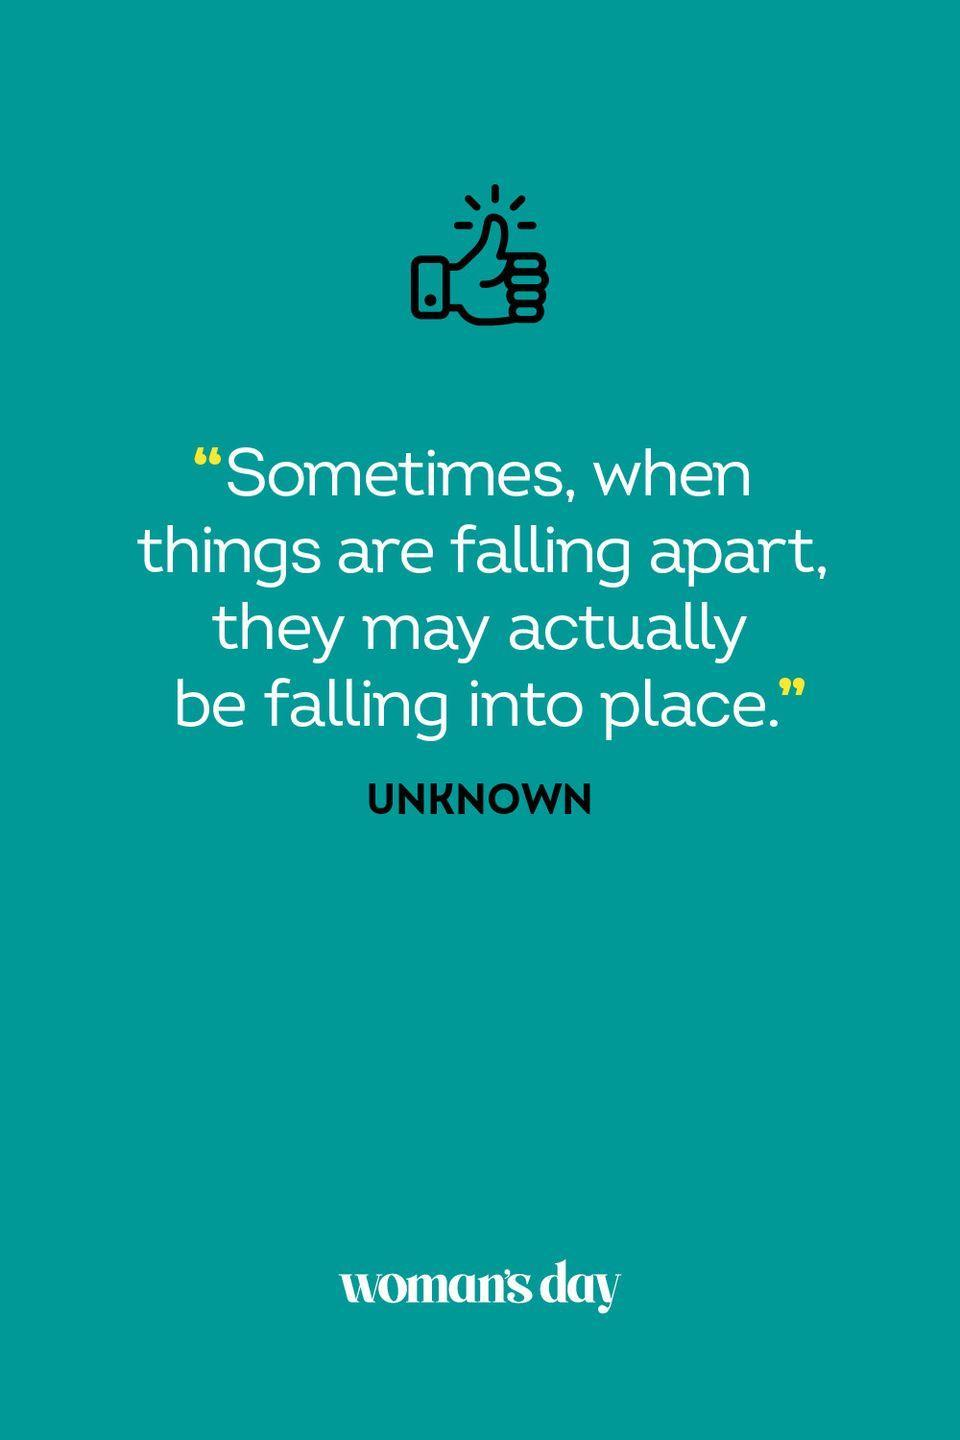 <p>Sometimes, when things are falling apart, they may actually be falling into place.</p>